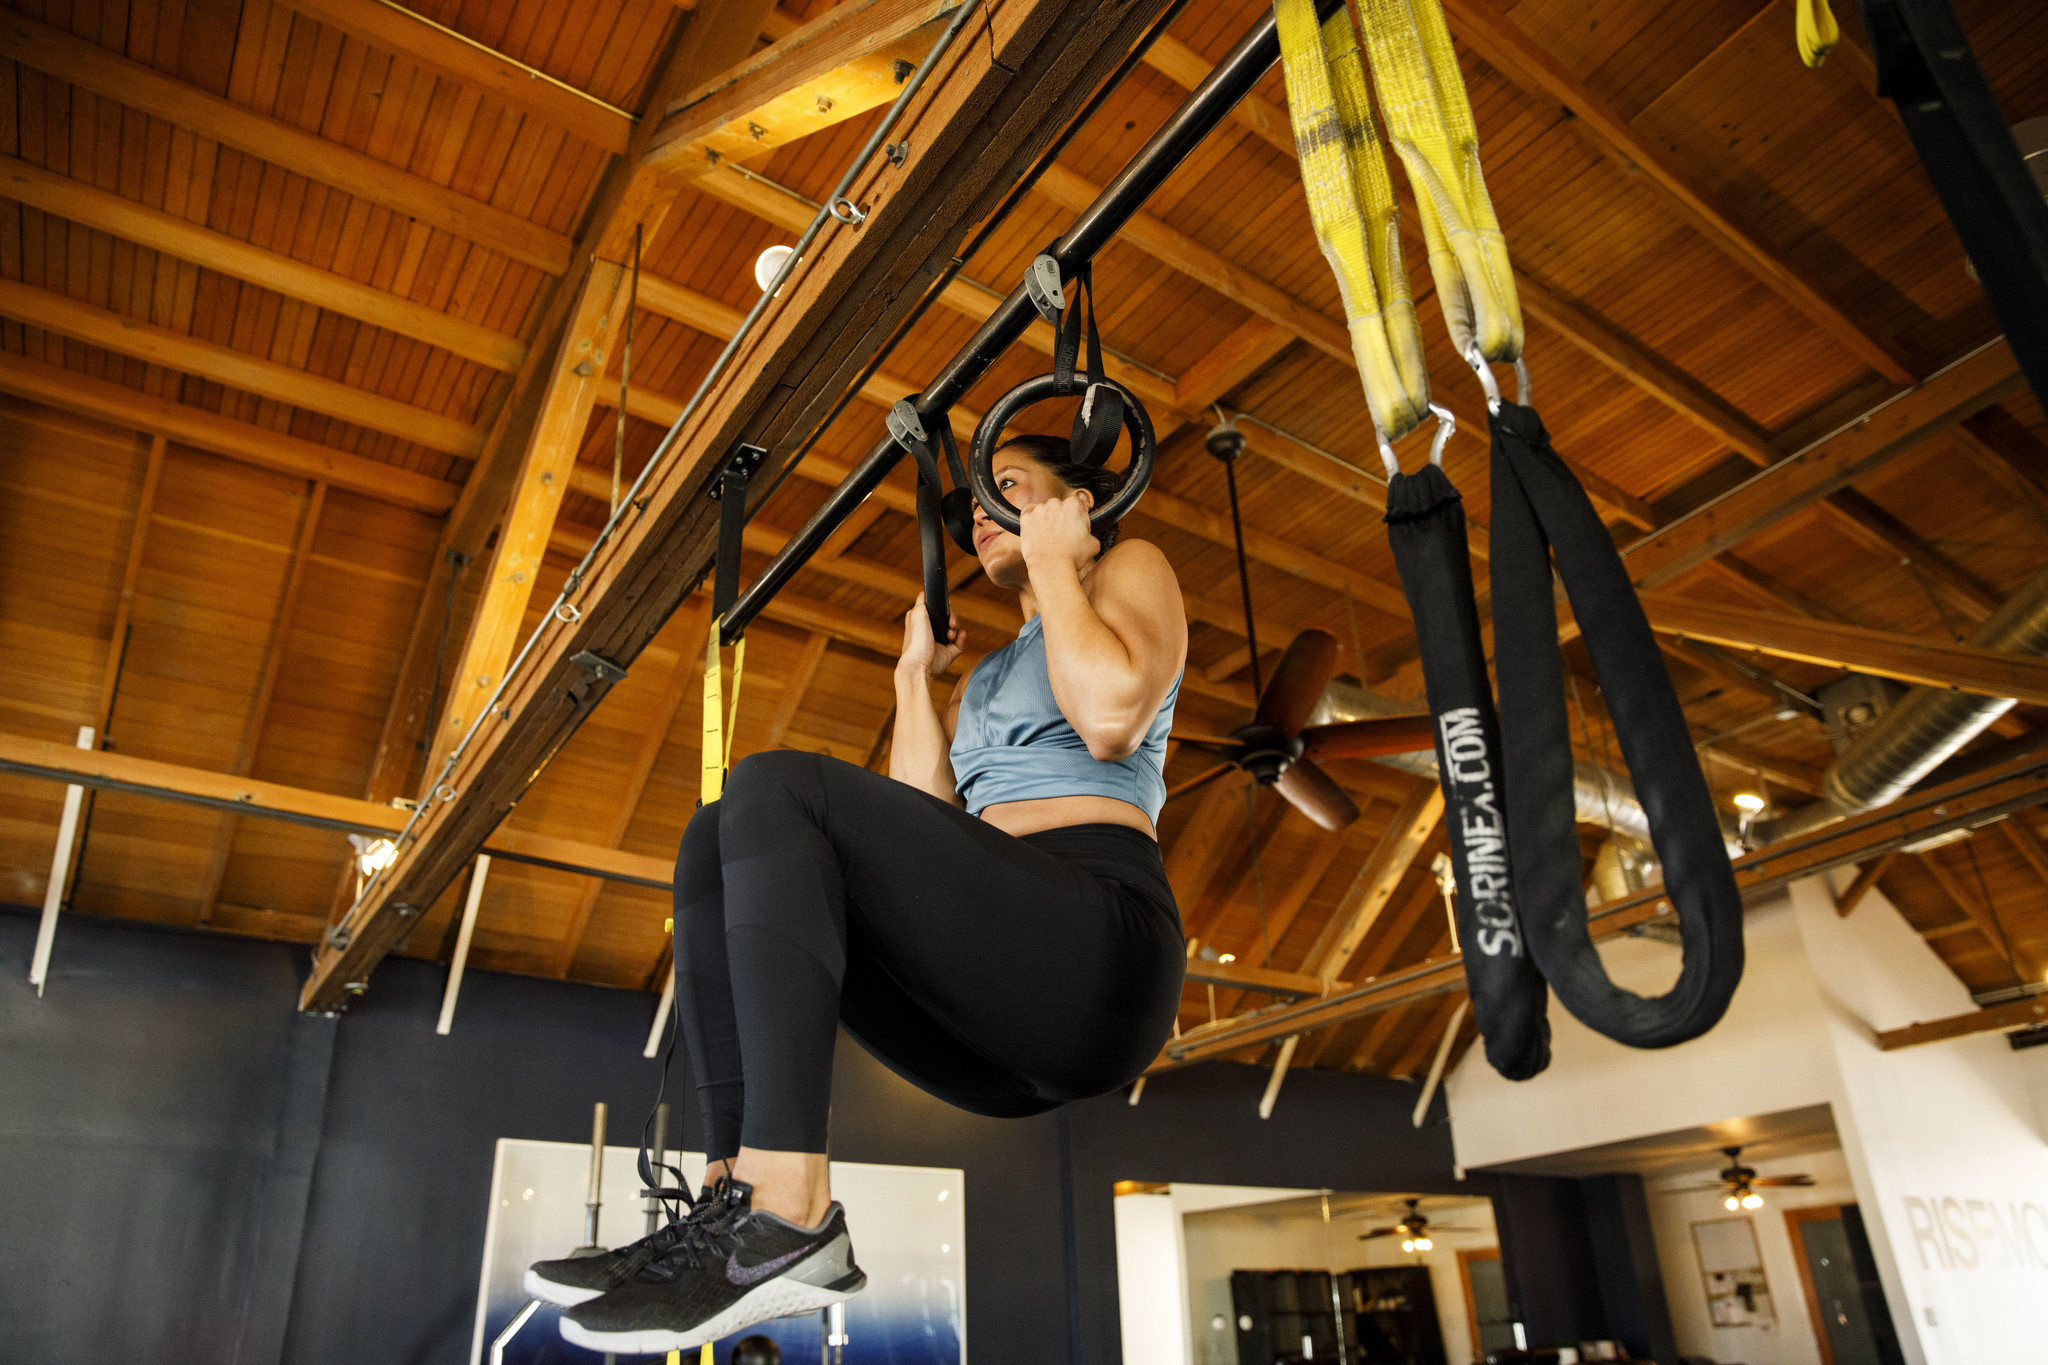 Trainer Alyssa Shoji demonstrates exercises on the rings at the gym Rise Movement on Saturday, Febru